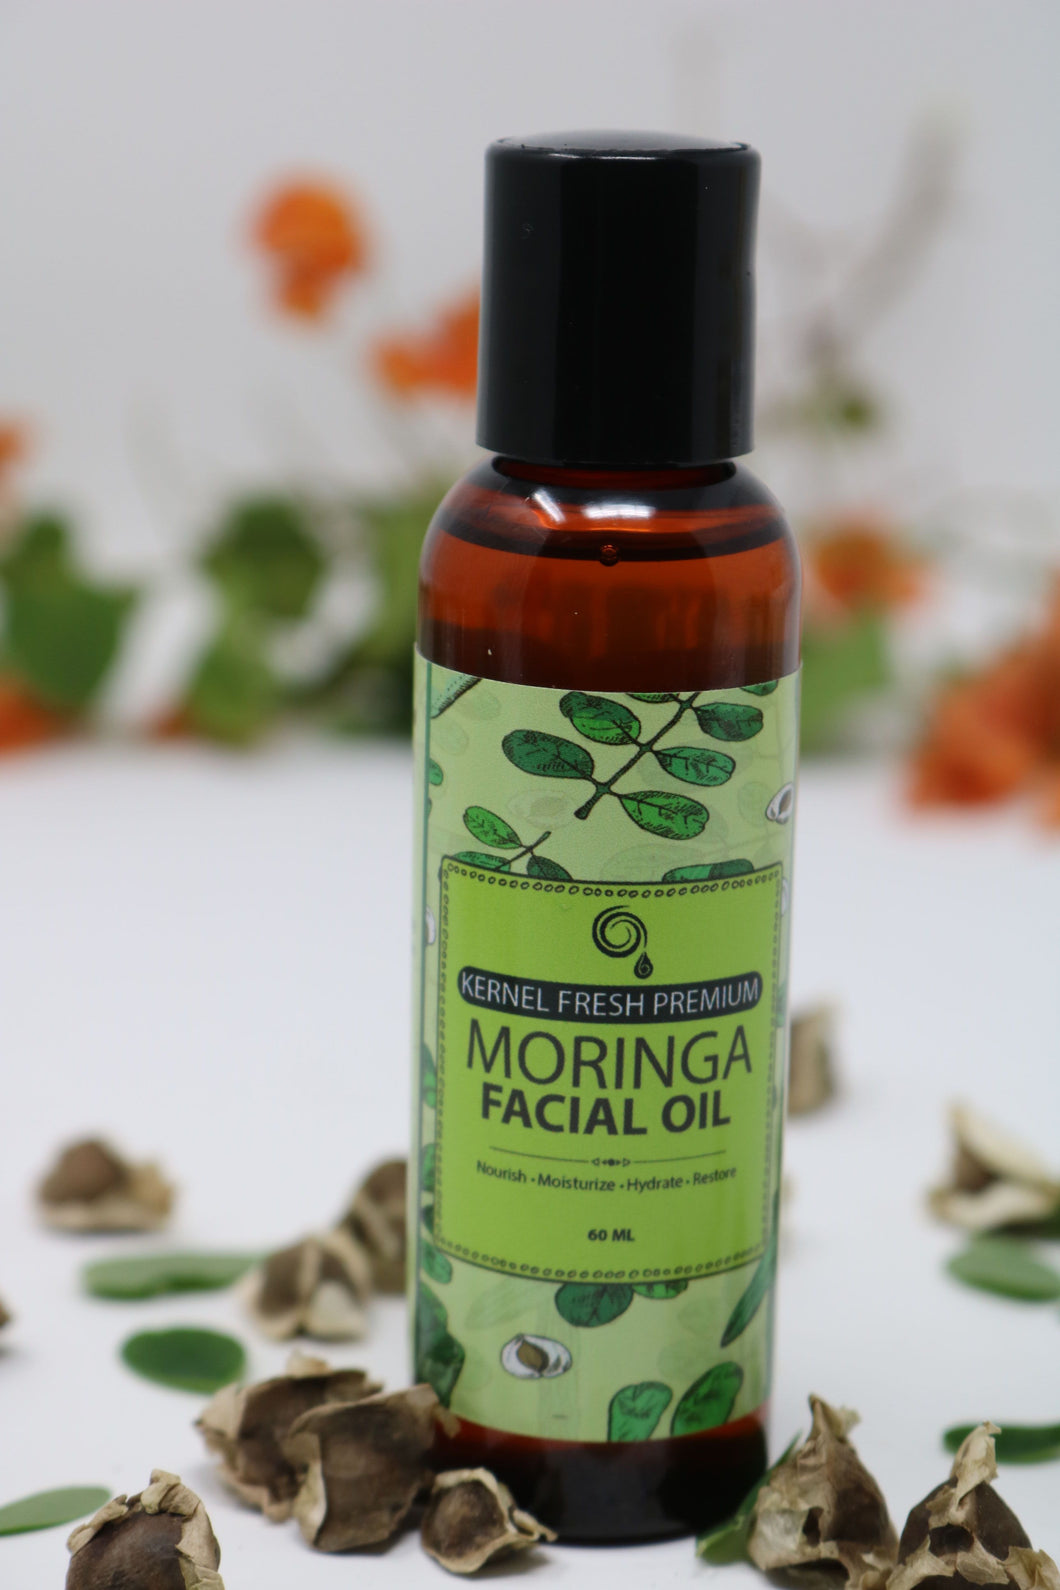 Kernel Fresh Premium Moringa Facial Oil (60ML)